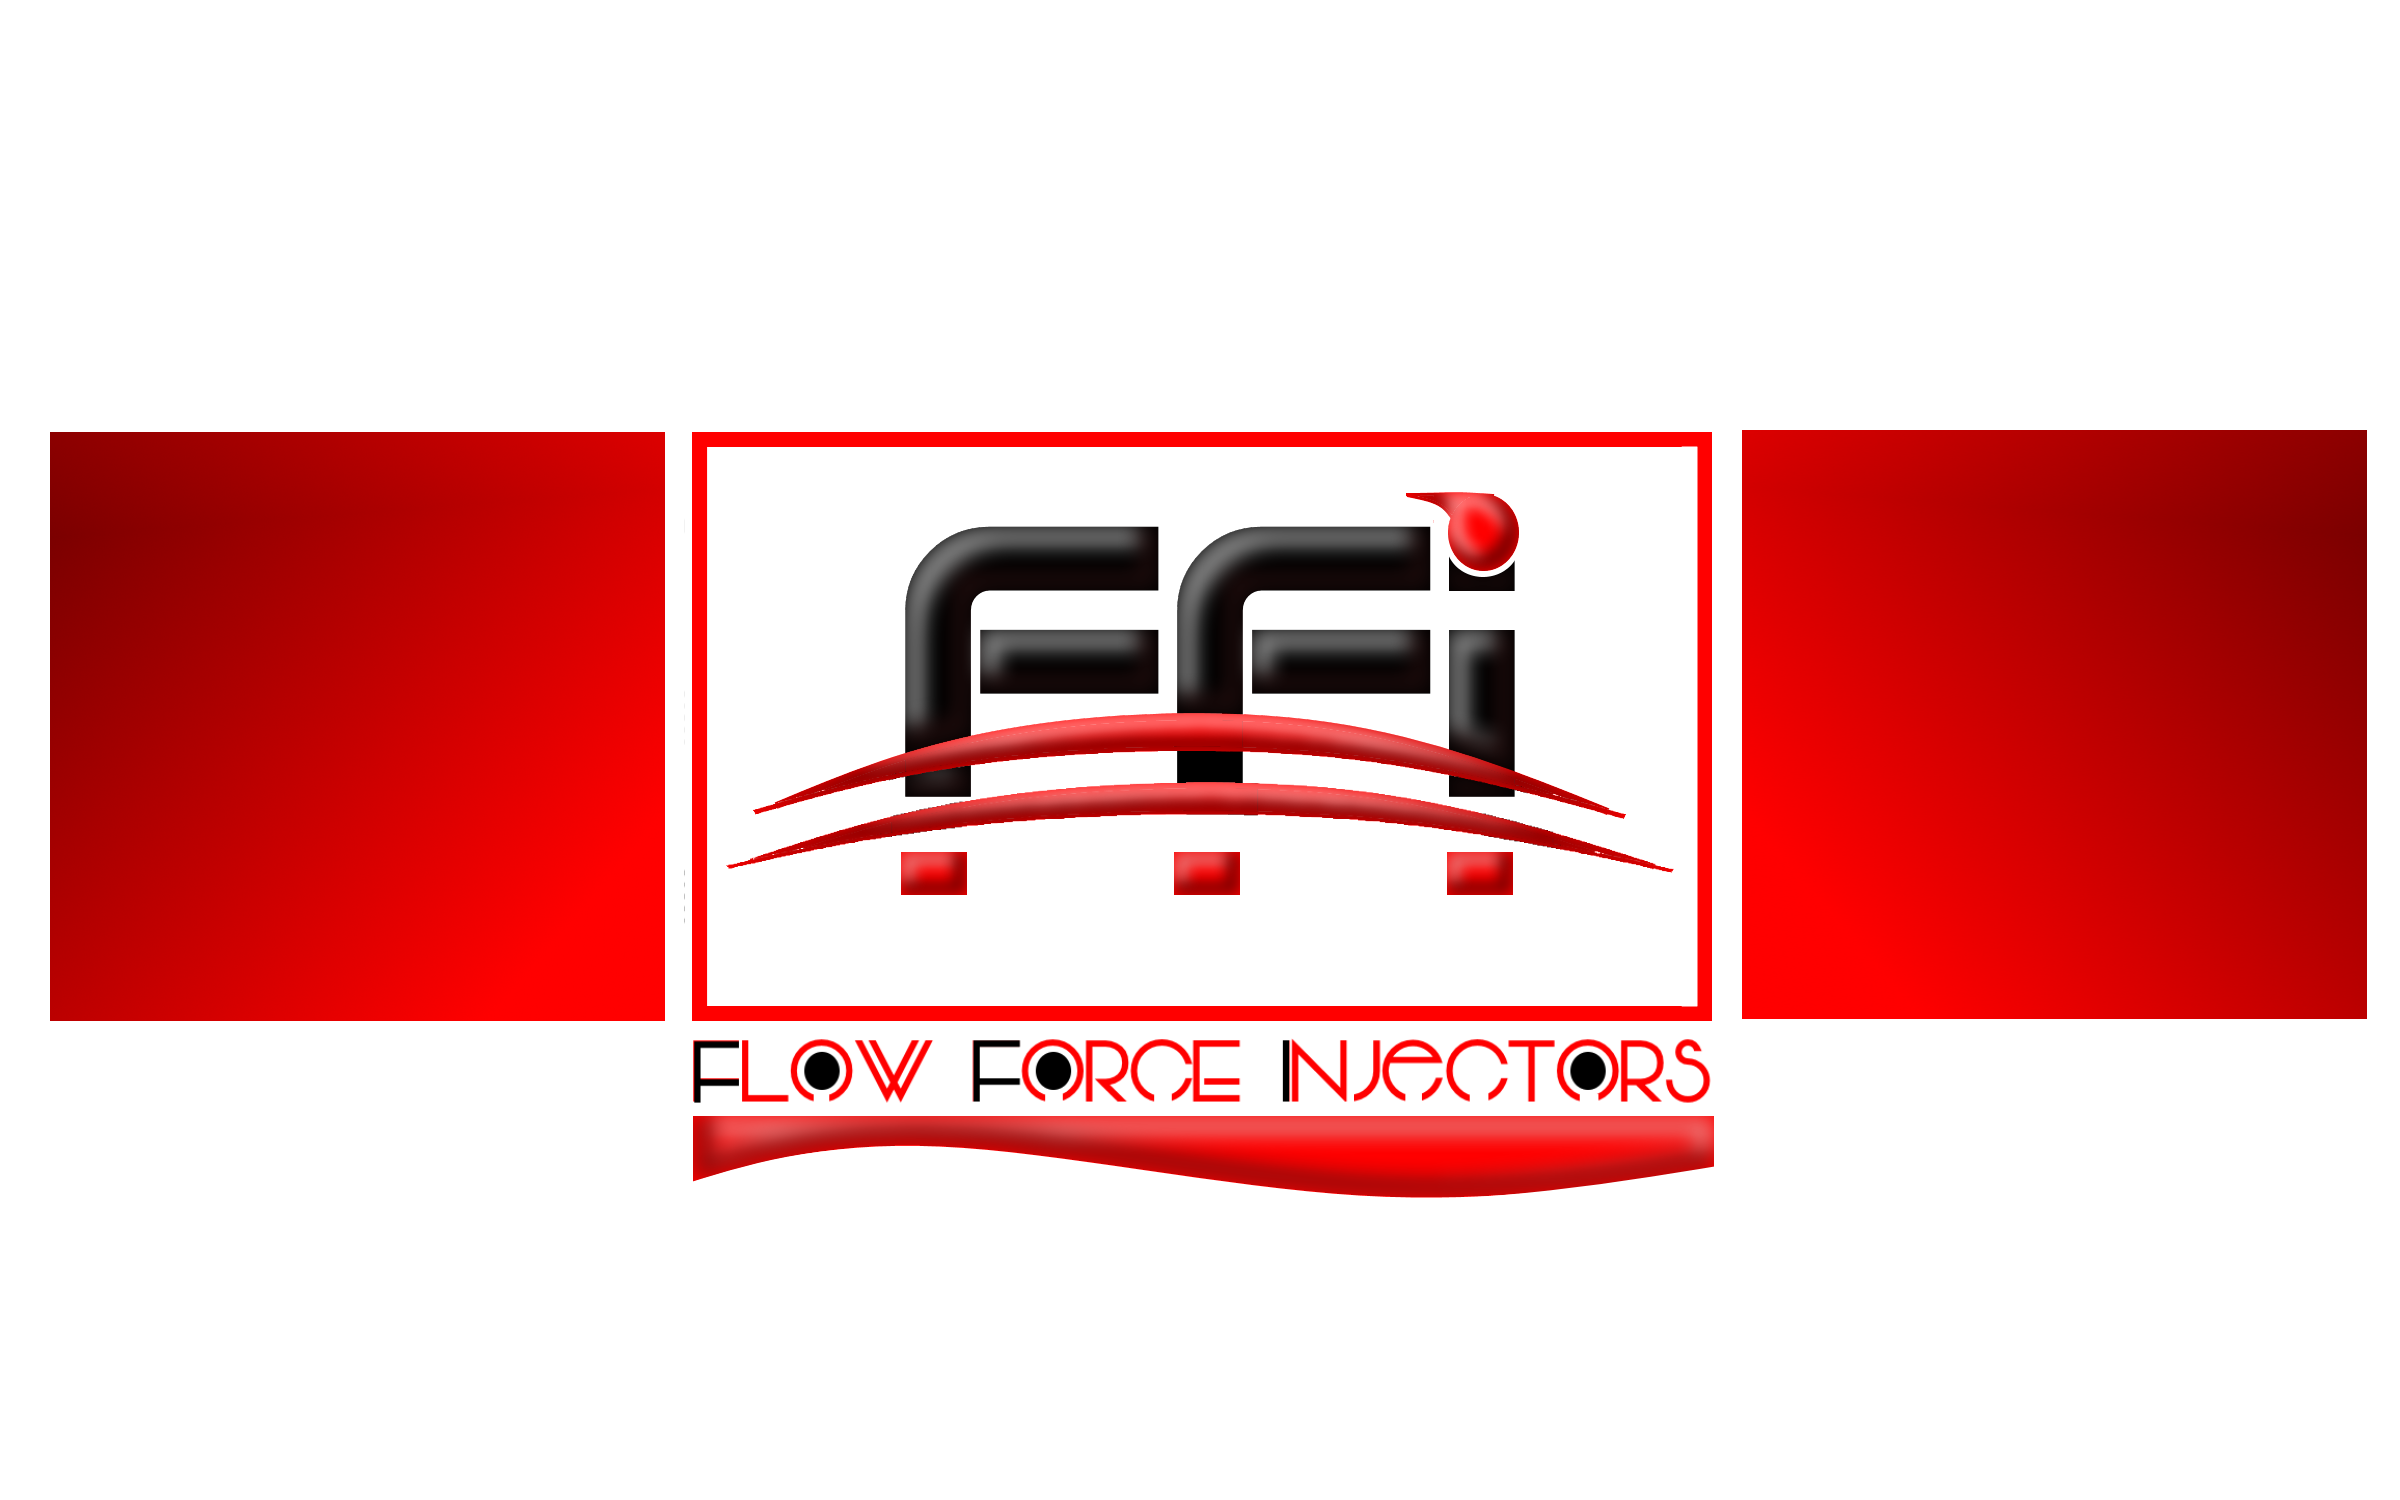 Logo Design by Roberto Bassi - Entry No. 82 in the Logo Design Contest Fun Logo Design for Flow Force Injectors.